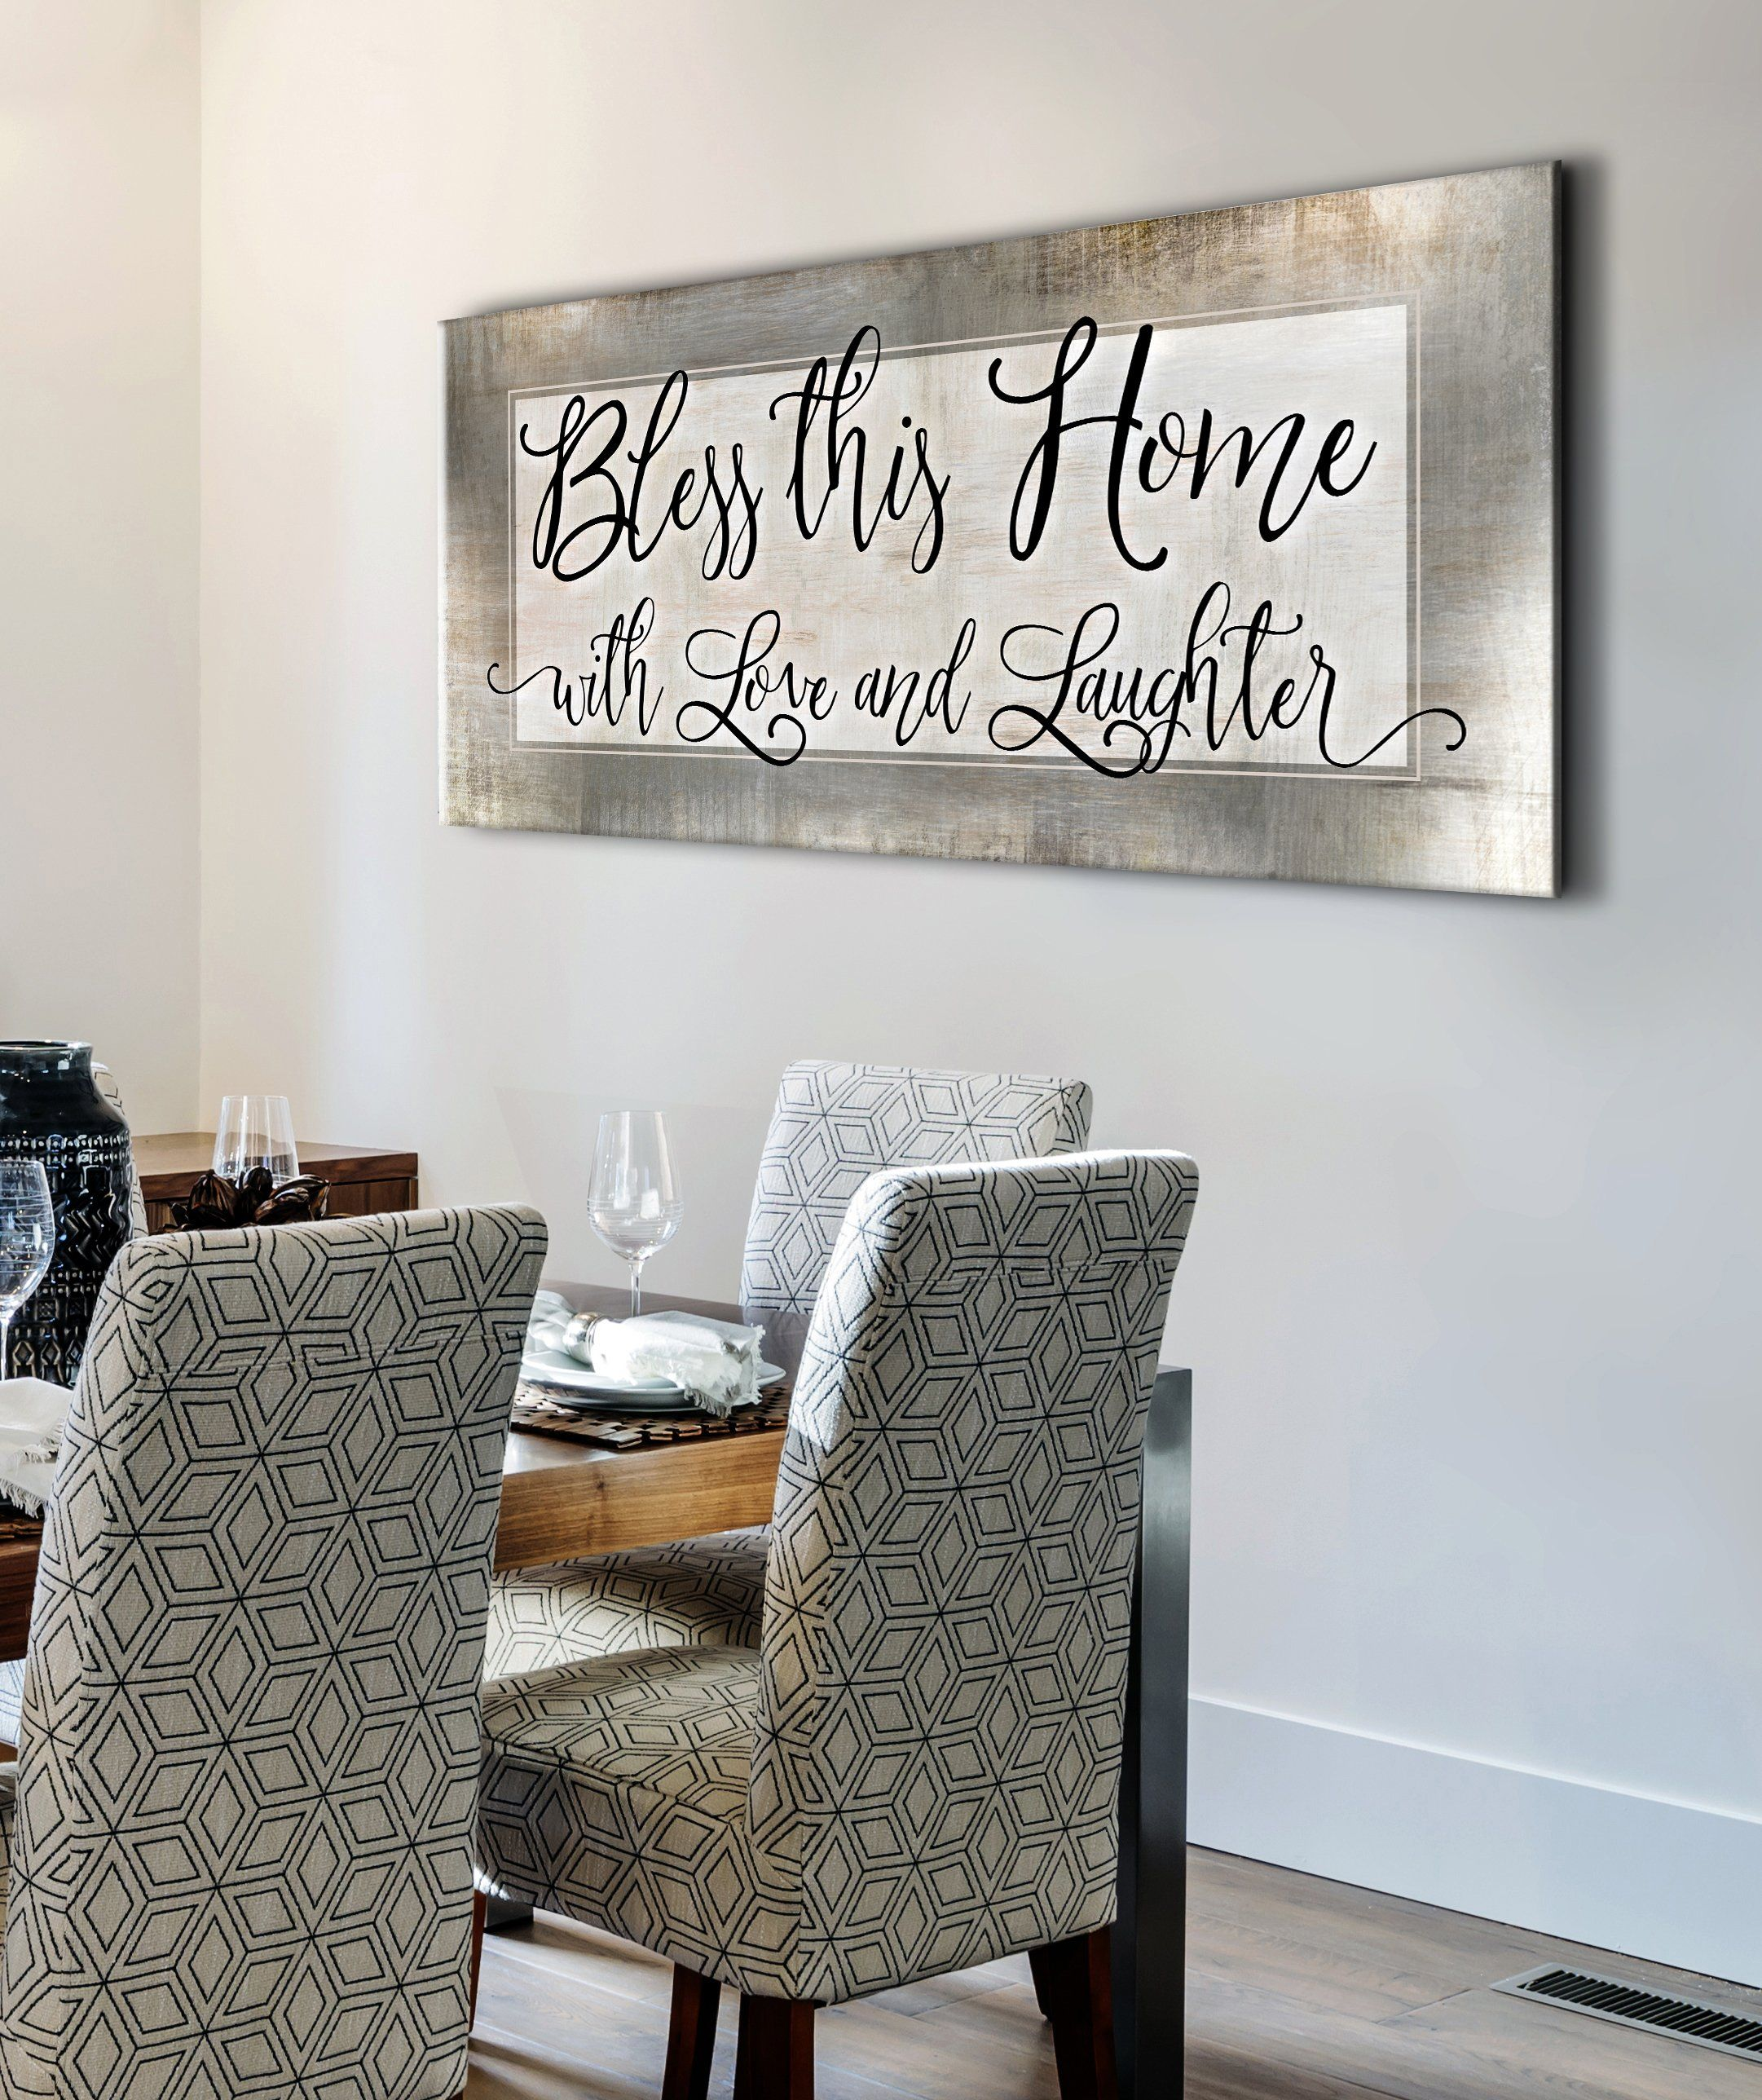 Christian Wall Art: Bless This Home With Love (Wood Frame Ready To Hang)